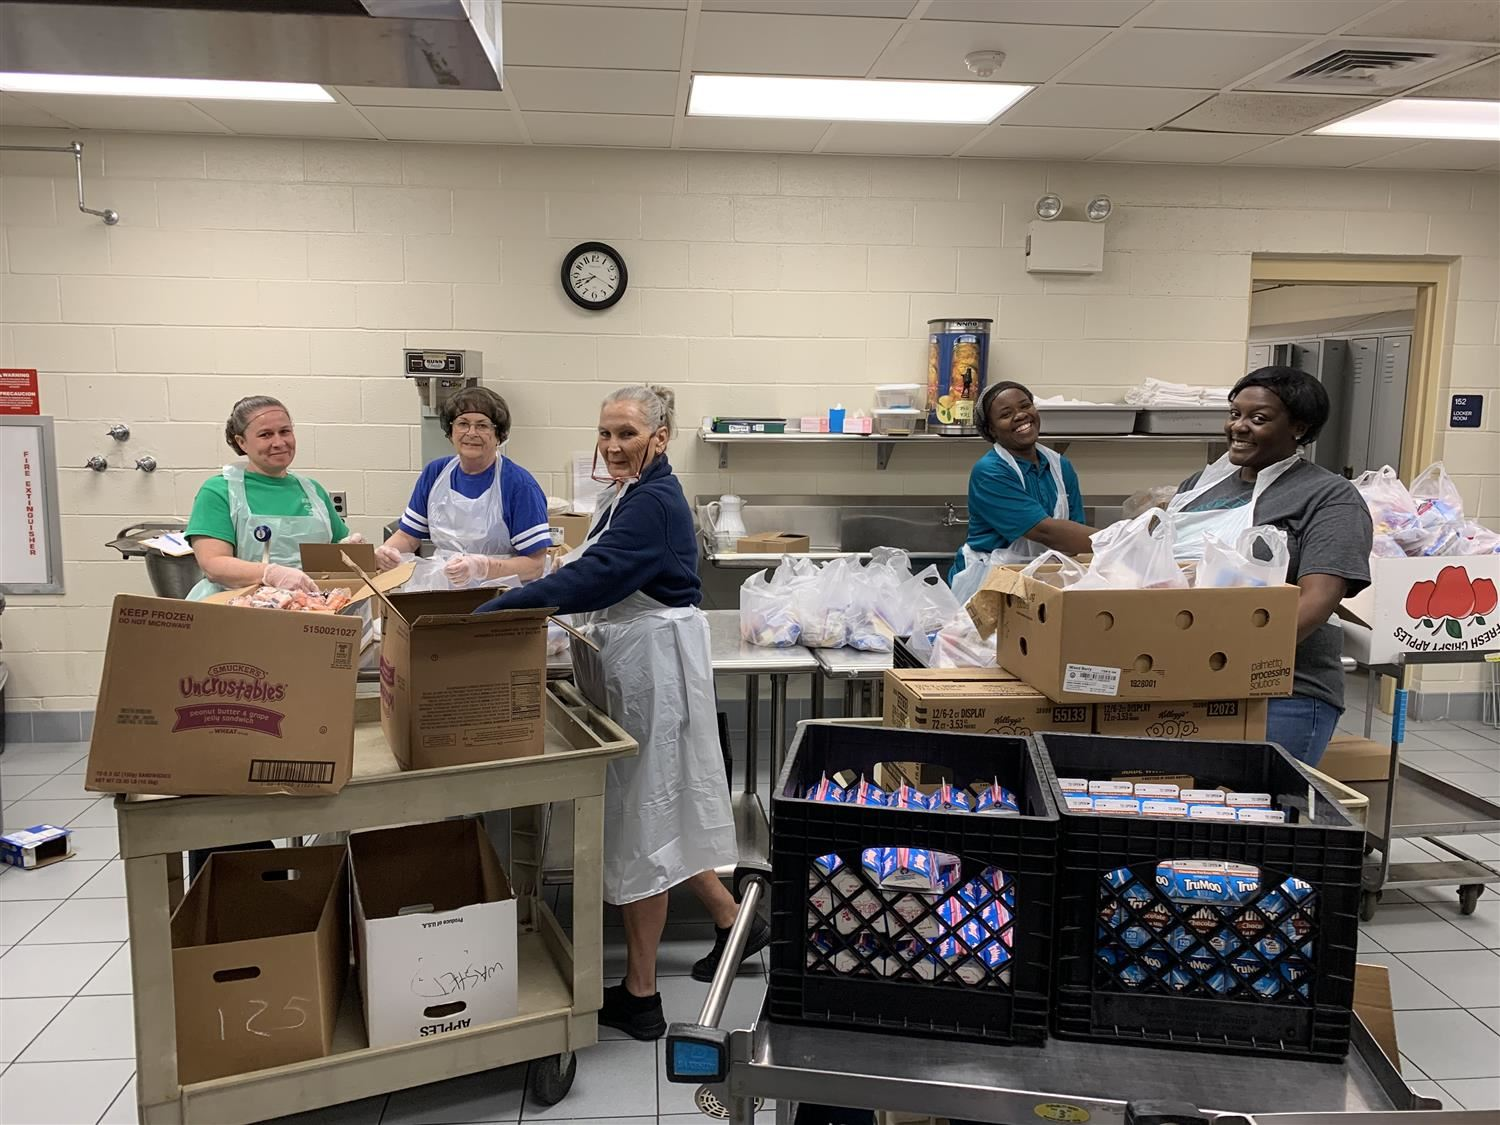 JCPS School Nutrition Serves Meals for Children - True Heroes!